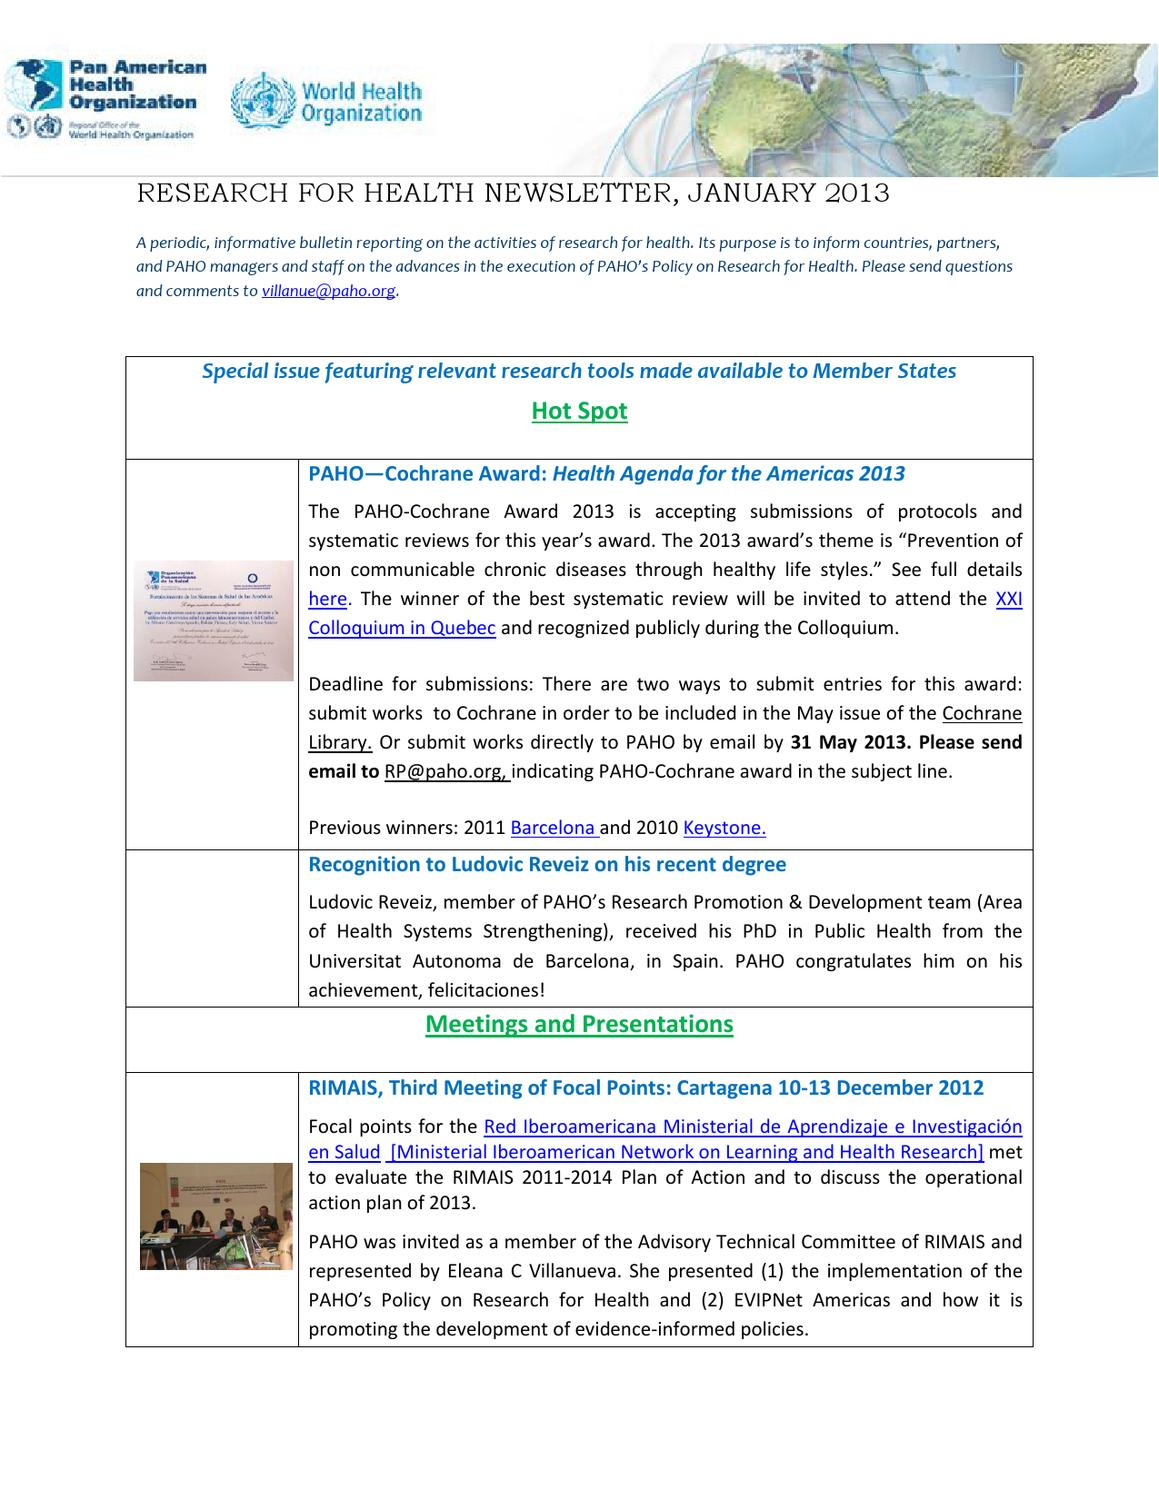 Research Newsletter January 2013 by Pan American Health Organization